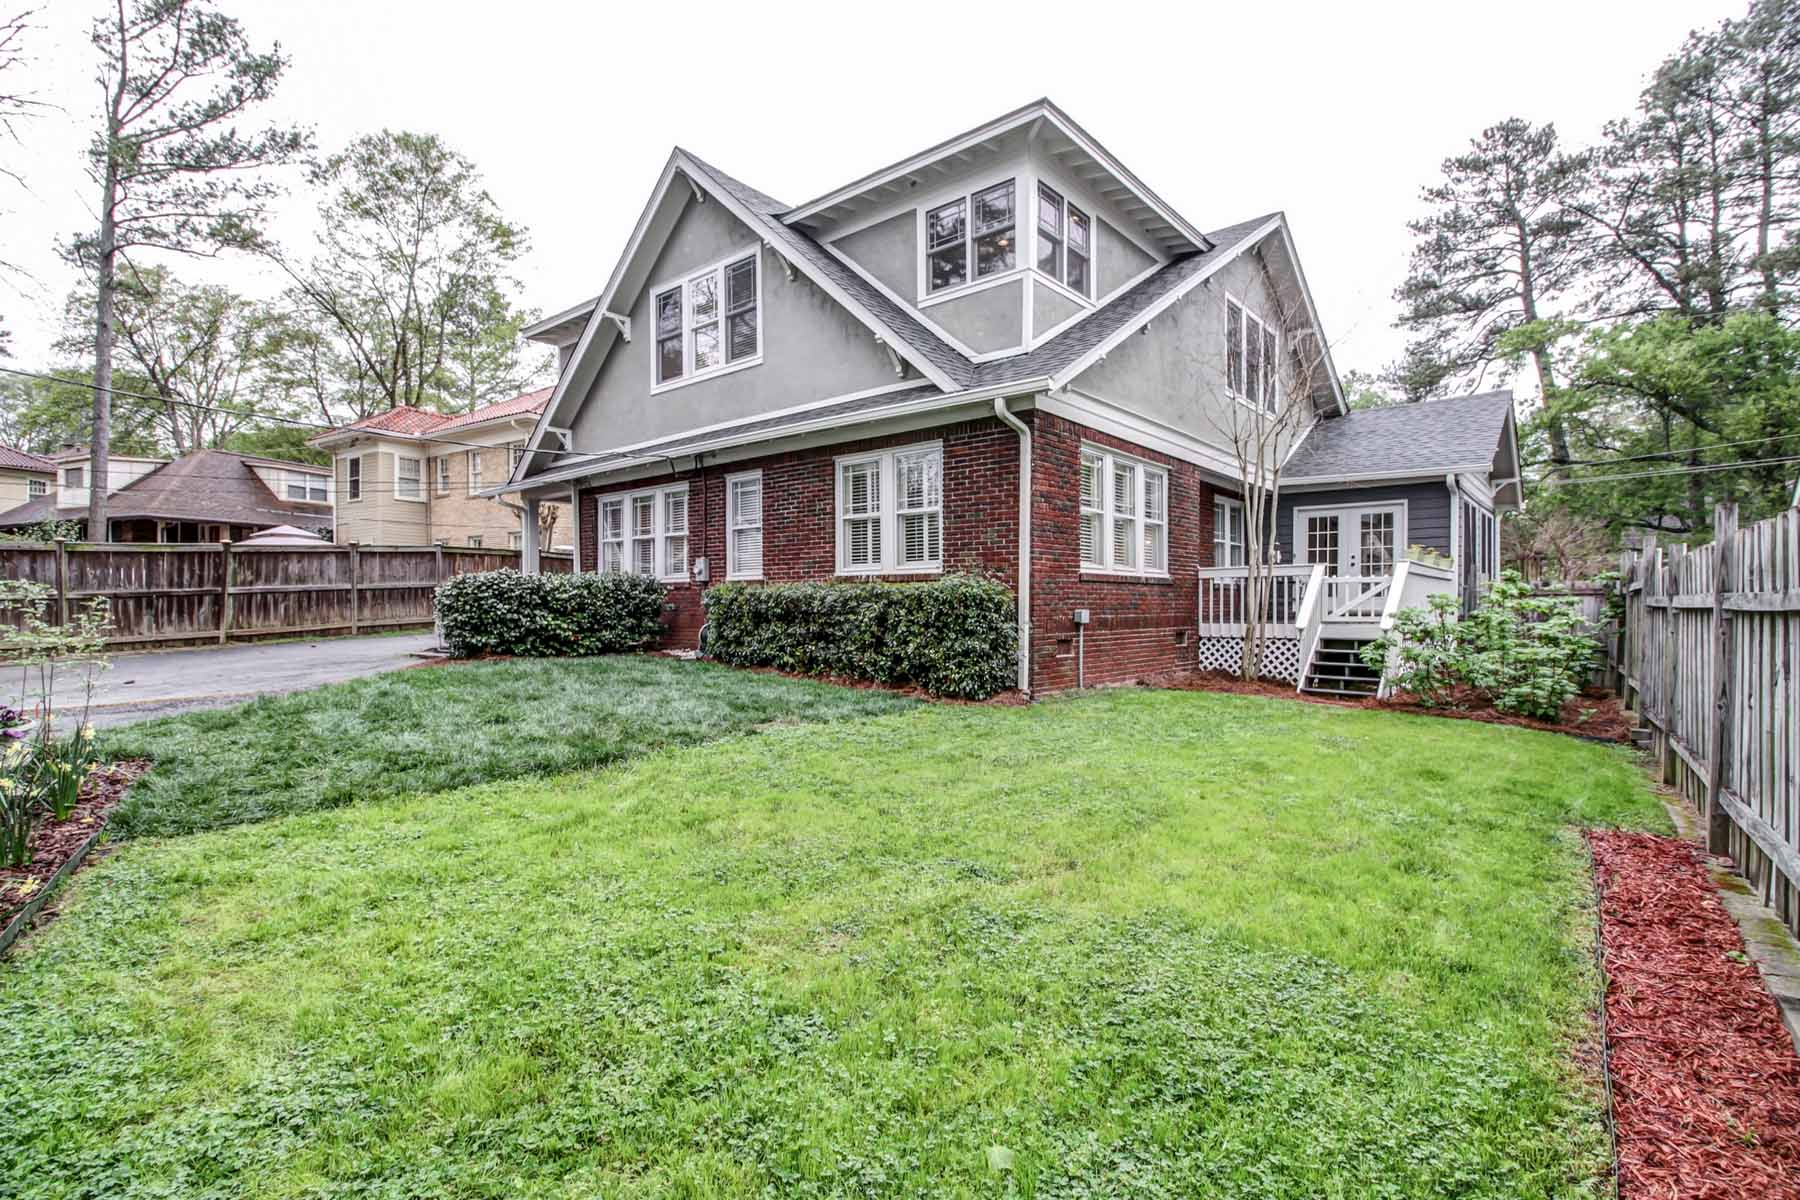 Tek Ailelik Ev için Satış at This expanded and renovated 1923 Craftsman will exceed all your expectations! 1281 Oxford Road NE Druid Hills, Atlanta, Georgia, 30306 Amerika Birleşik Devletleri